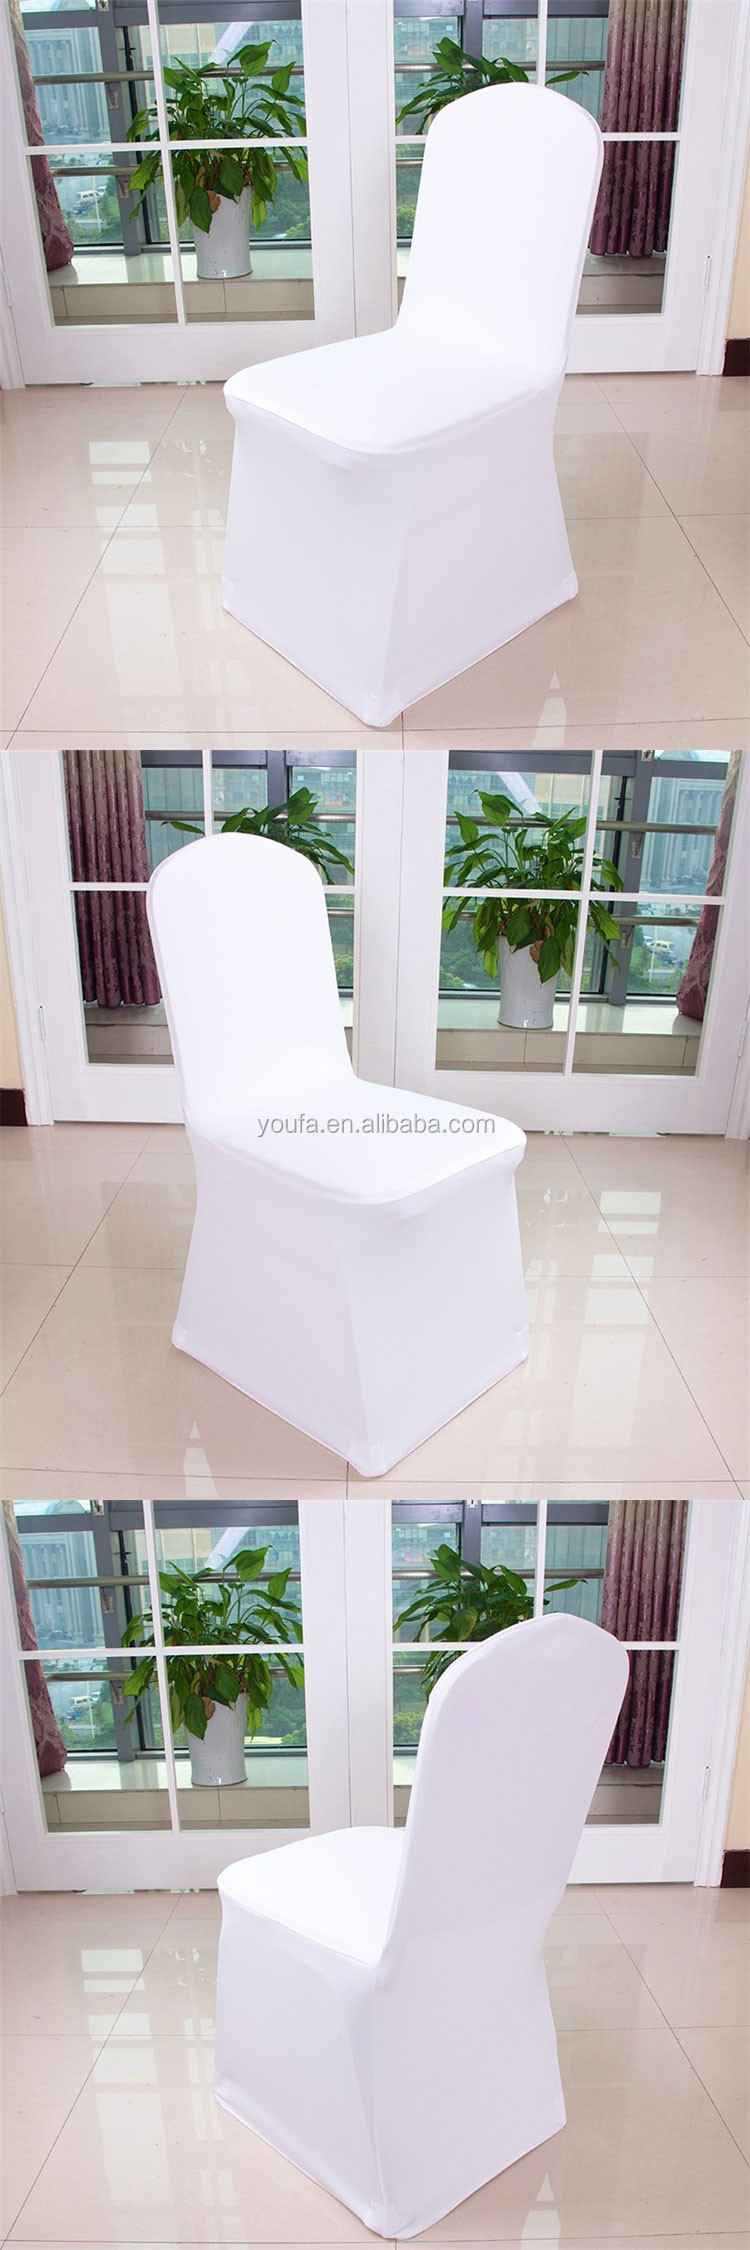 wedding chair cover wholesale buy wedding chair cover wholesale